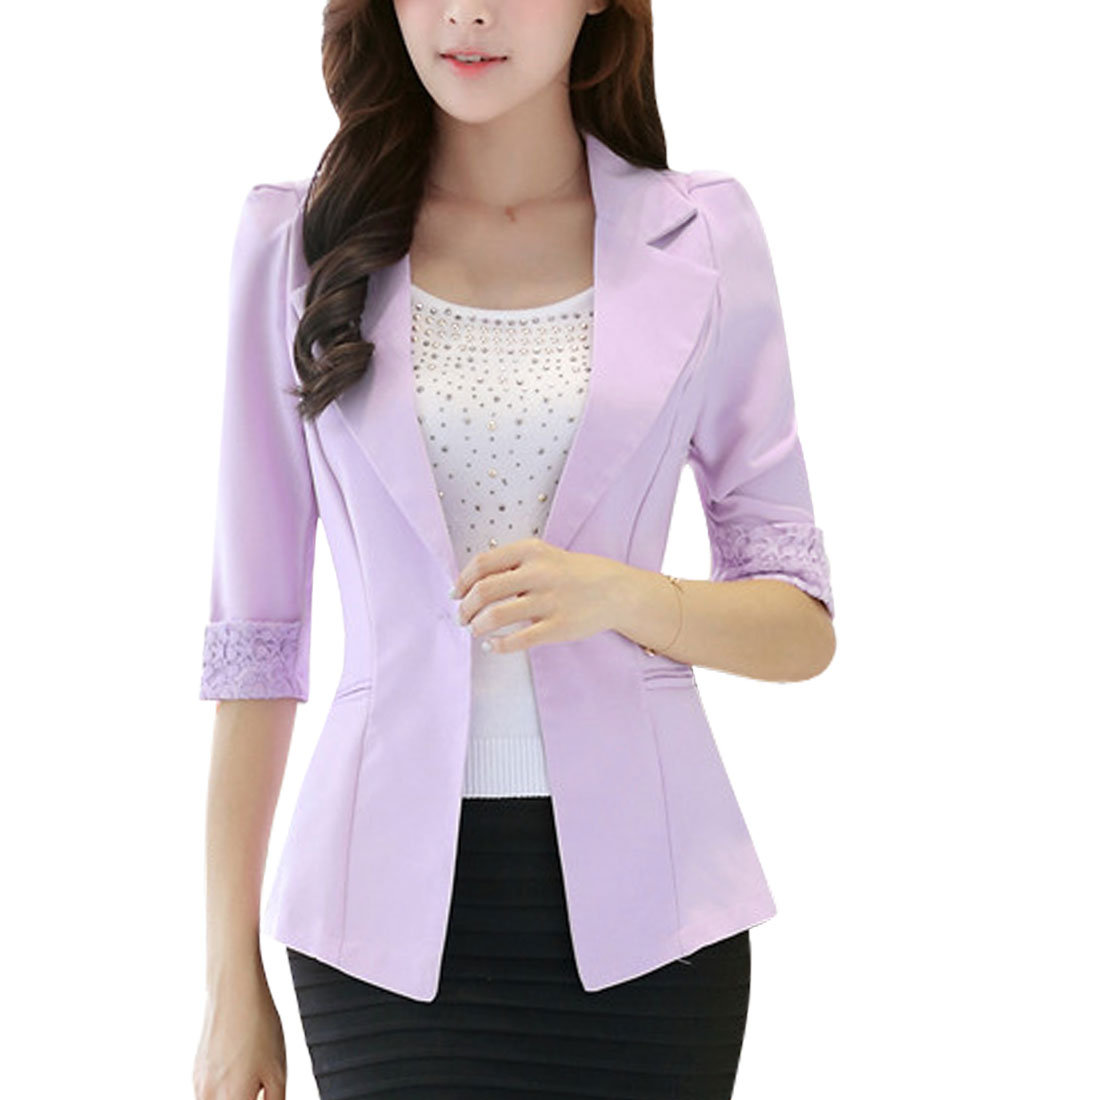 Women's 1/2 Sleeves Notched Lapel Lace Panel Purple Blazer Jacket (Size M / 8)